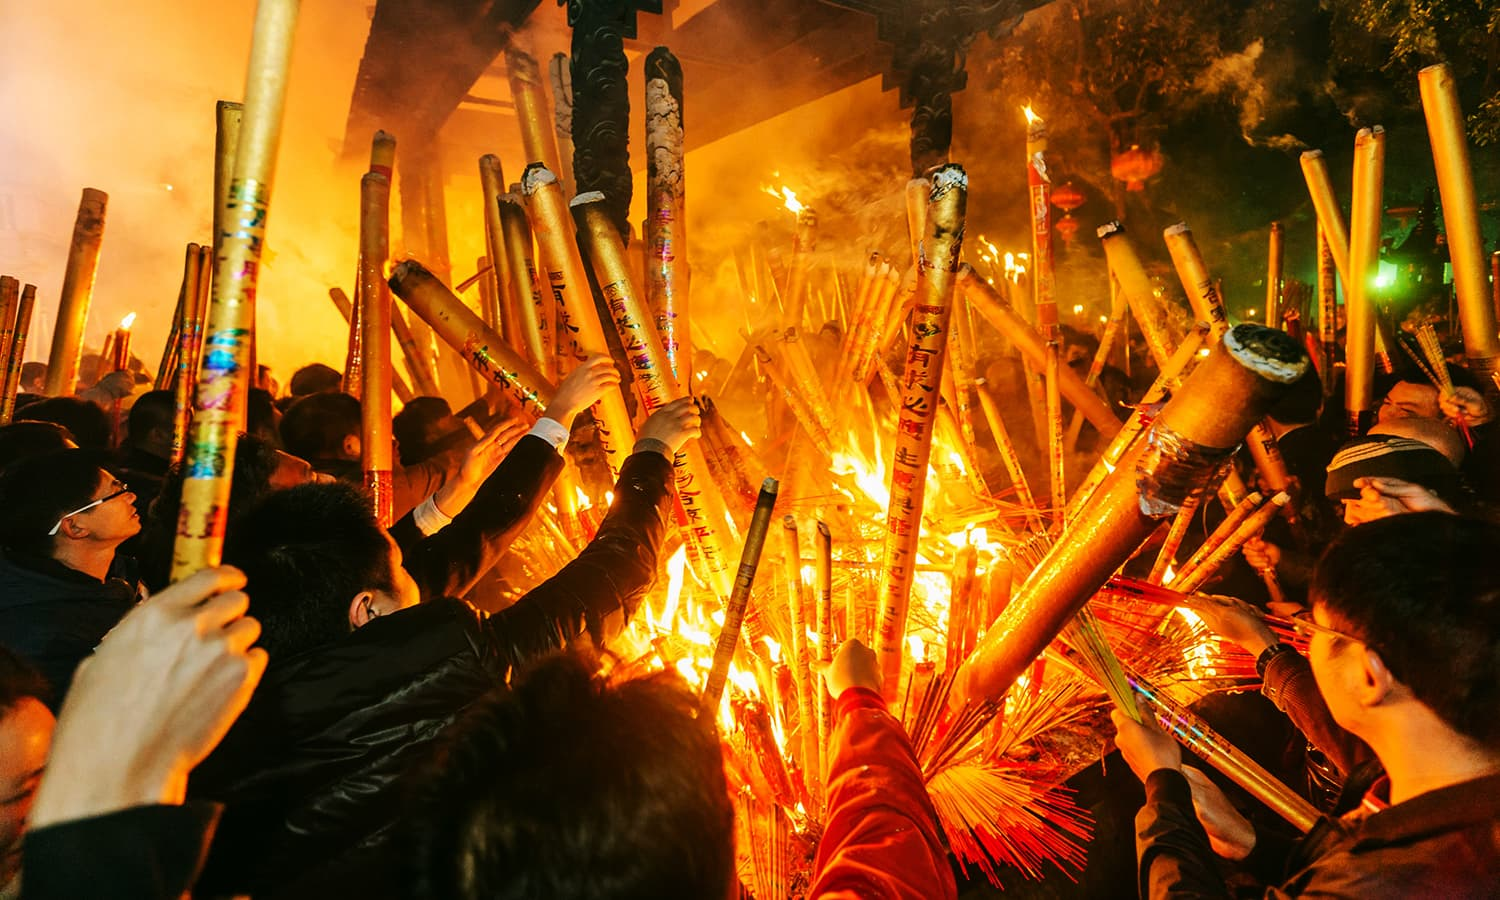 People burn incense as they pray for good fortune at the beginning of the first day of Chinese Lunar New Year. ─ Reuters